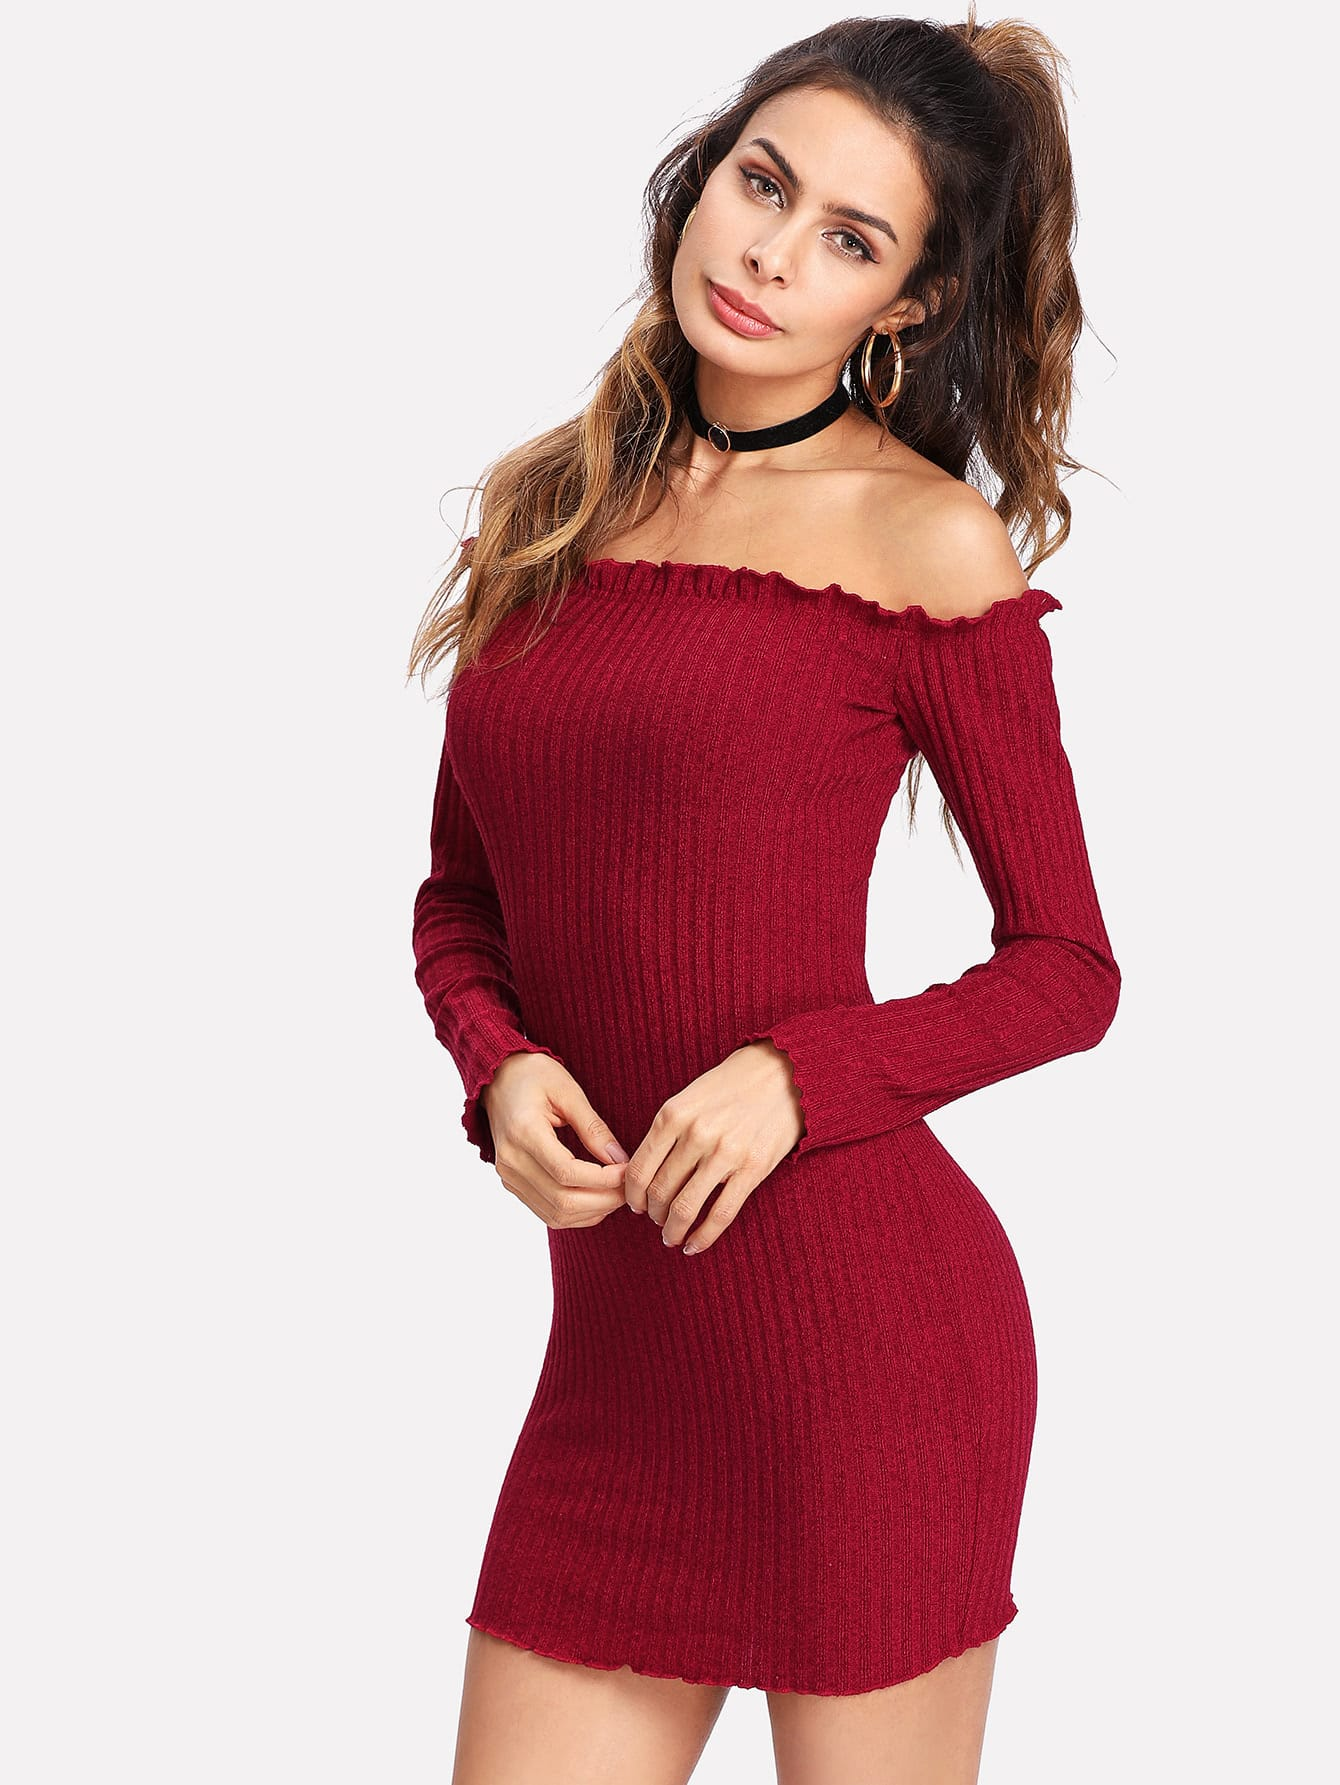 Frilled Off Shoulder Rib Knit Dress dress171024716